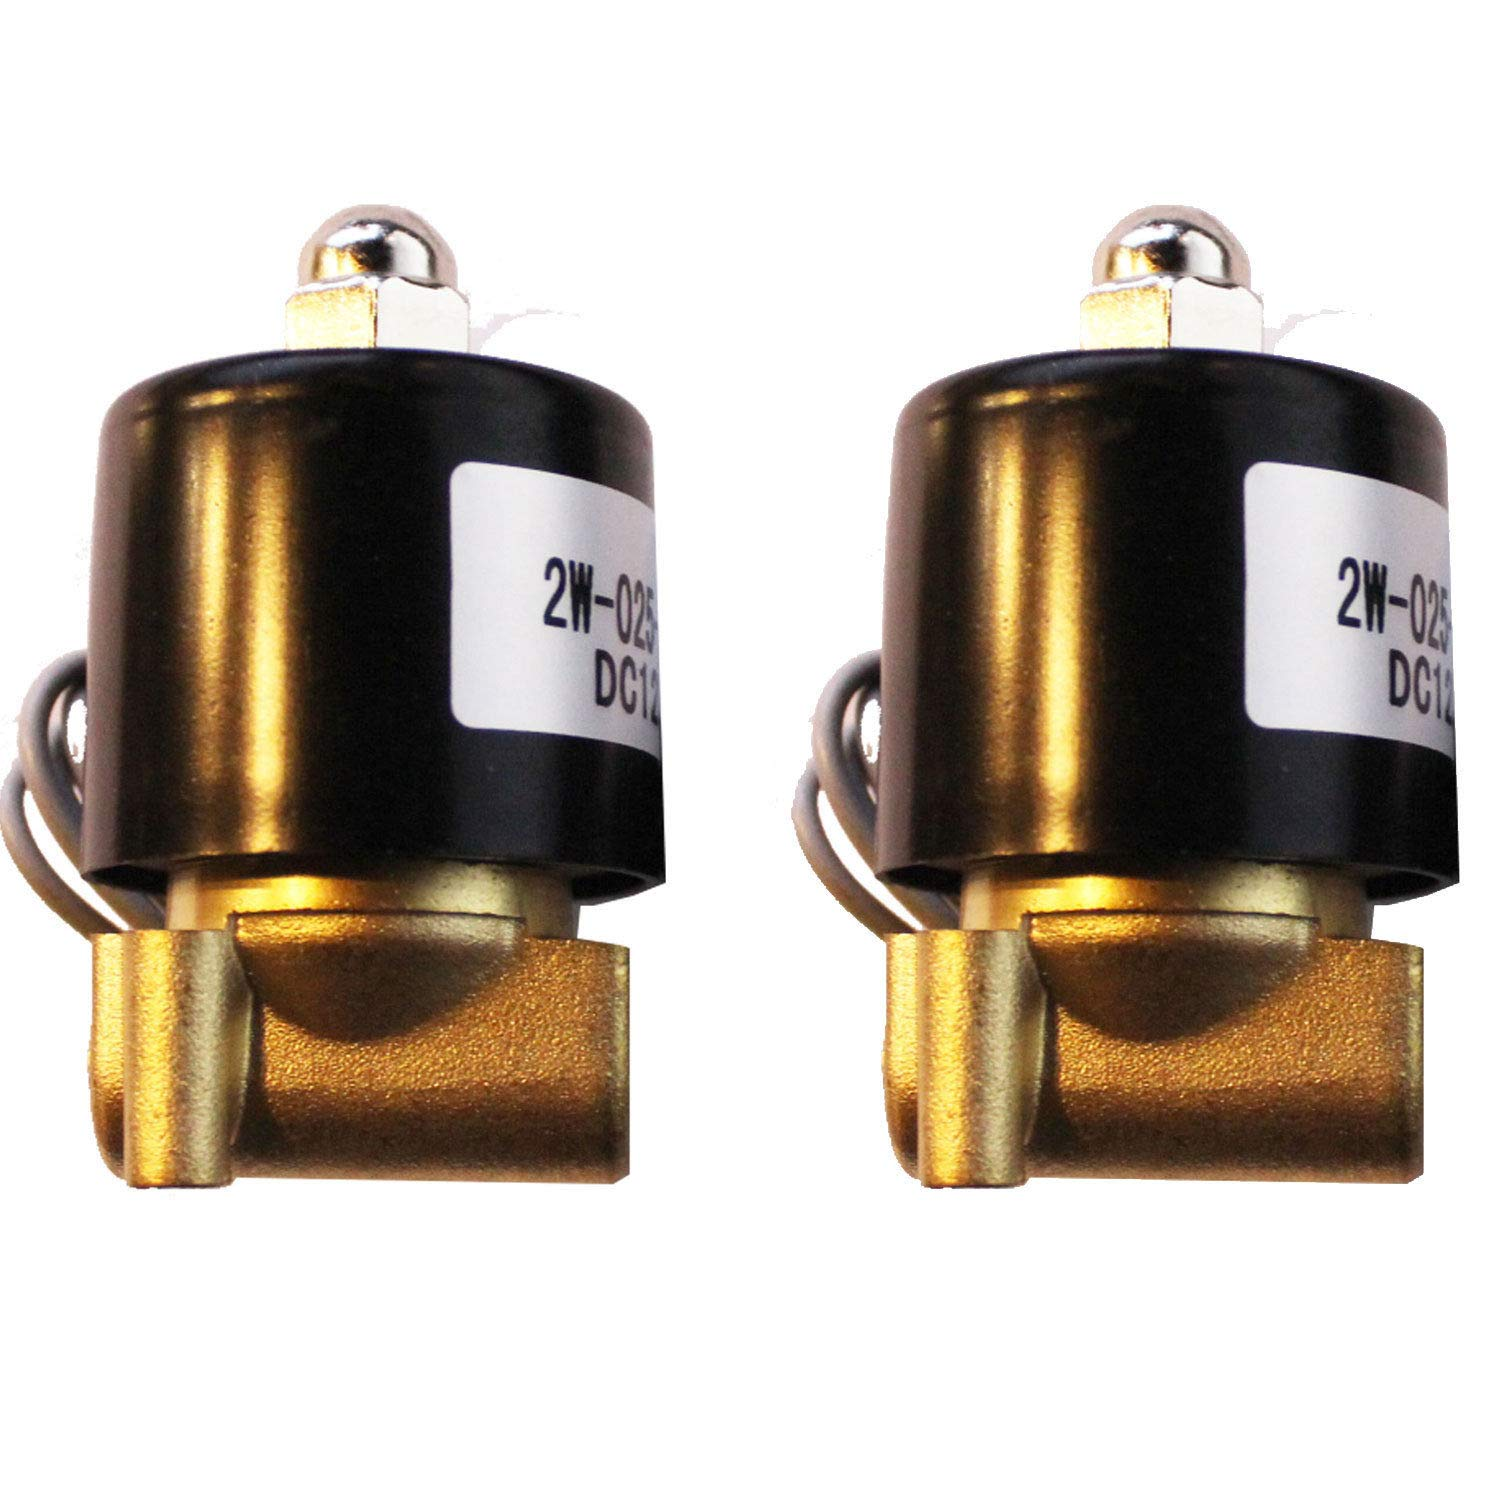 Airbagit air Ride Suspension Brass 1/4'' npt 2 Valve solenoids for Train Horn or Custom by Airbagit